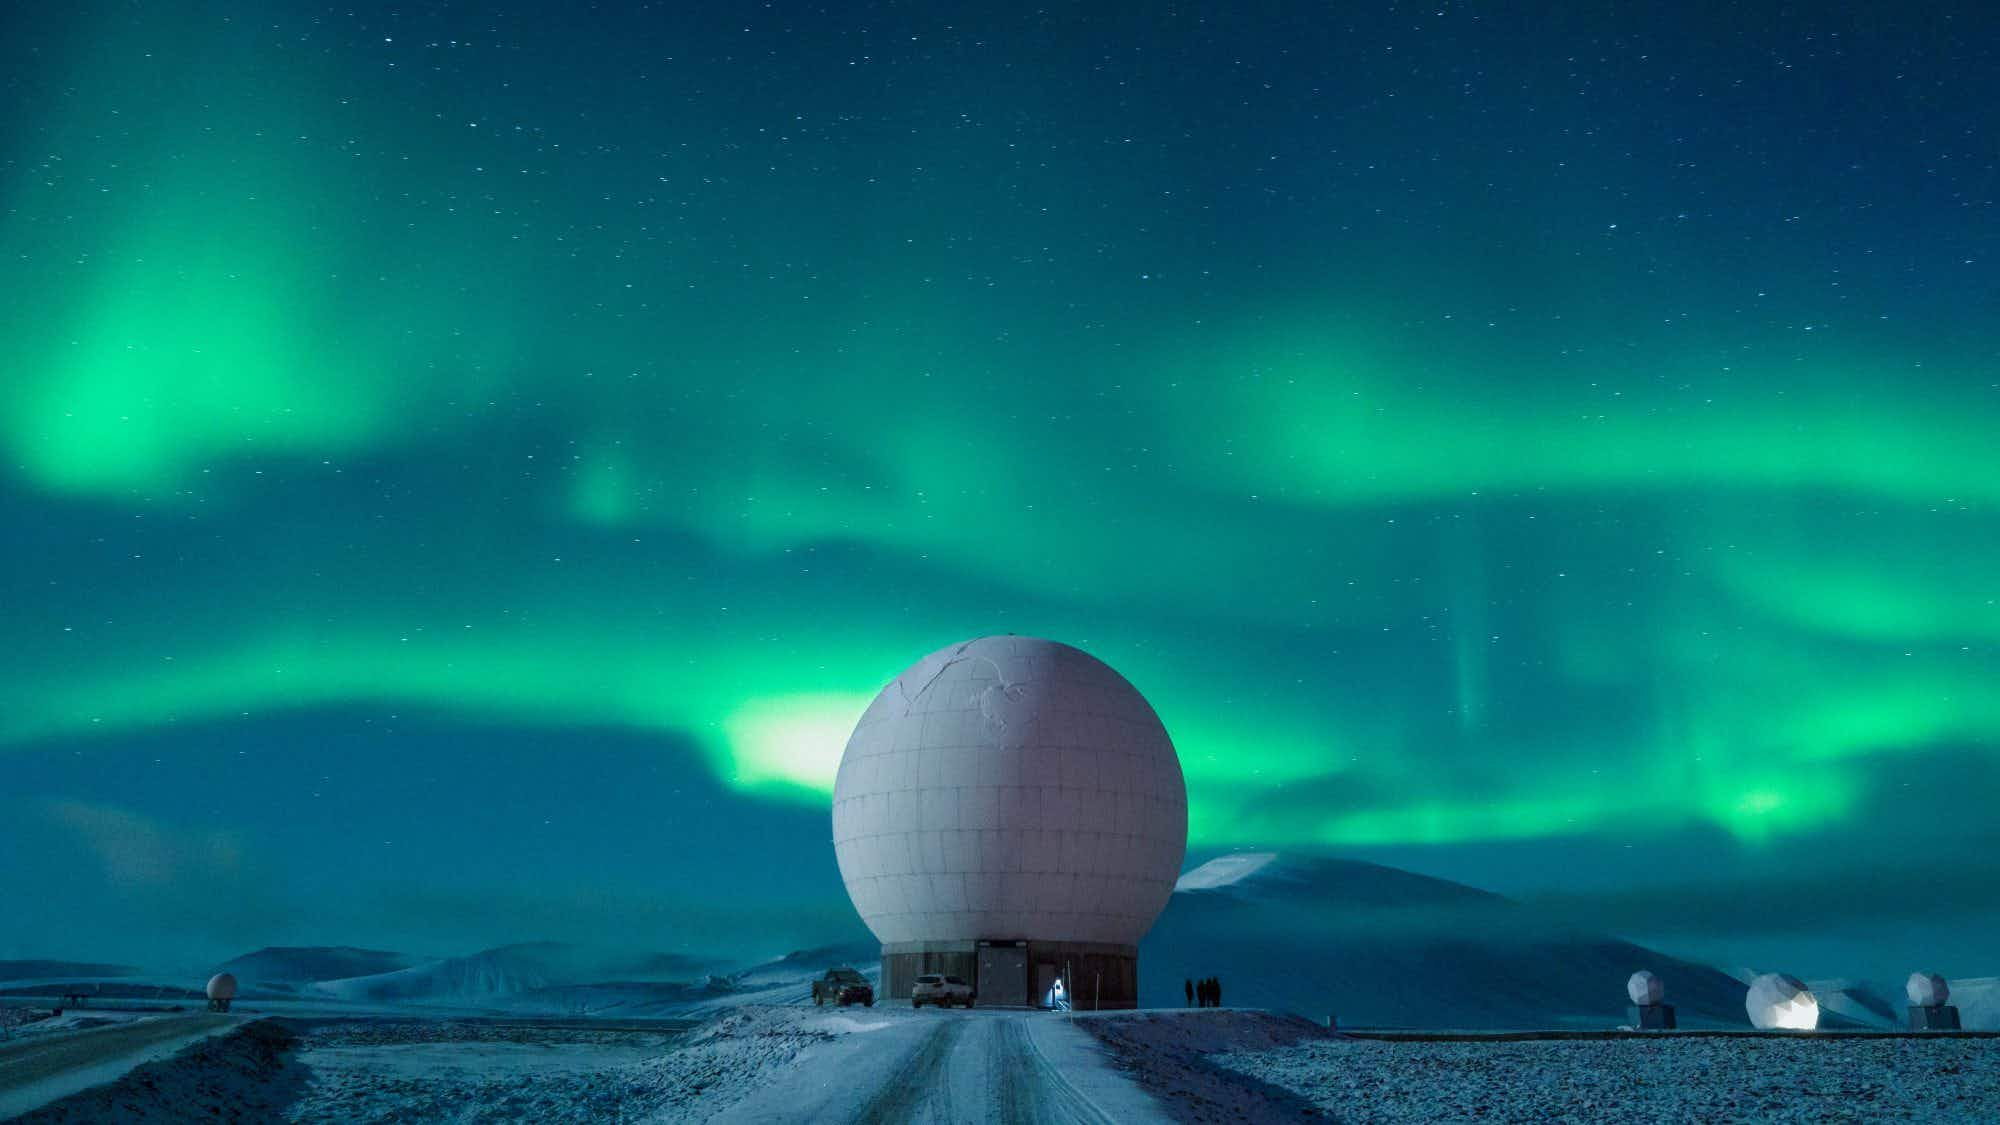 Check out these otherworldly shots of an Arctic satellite station